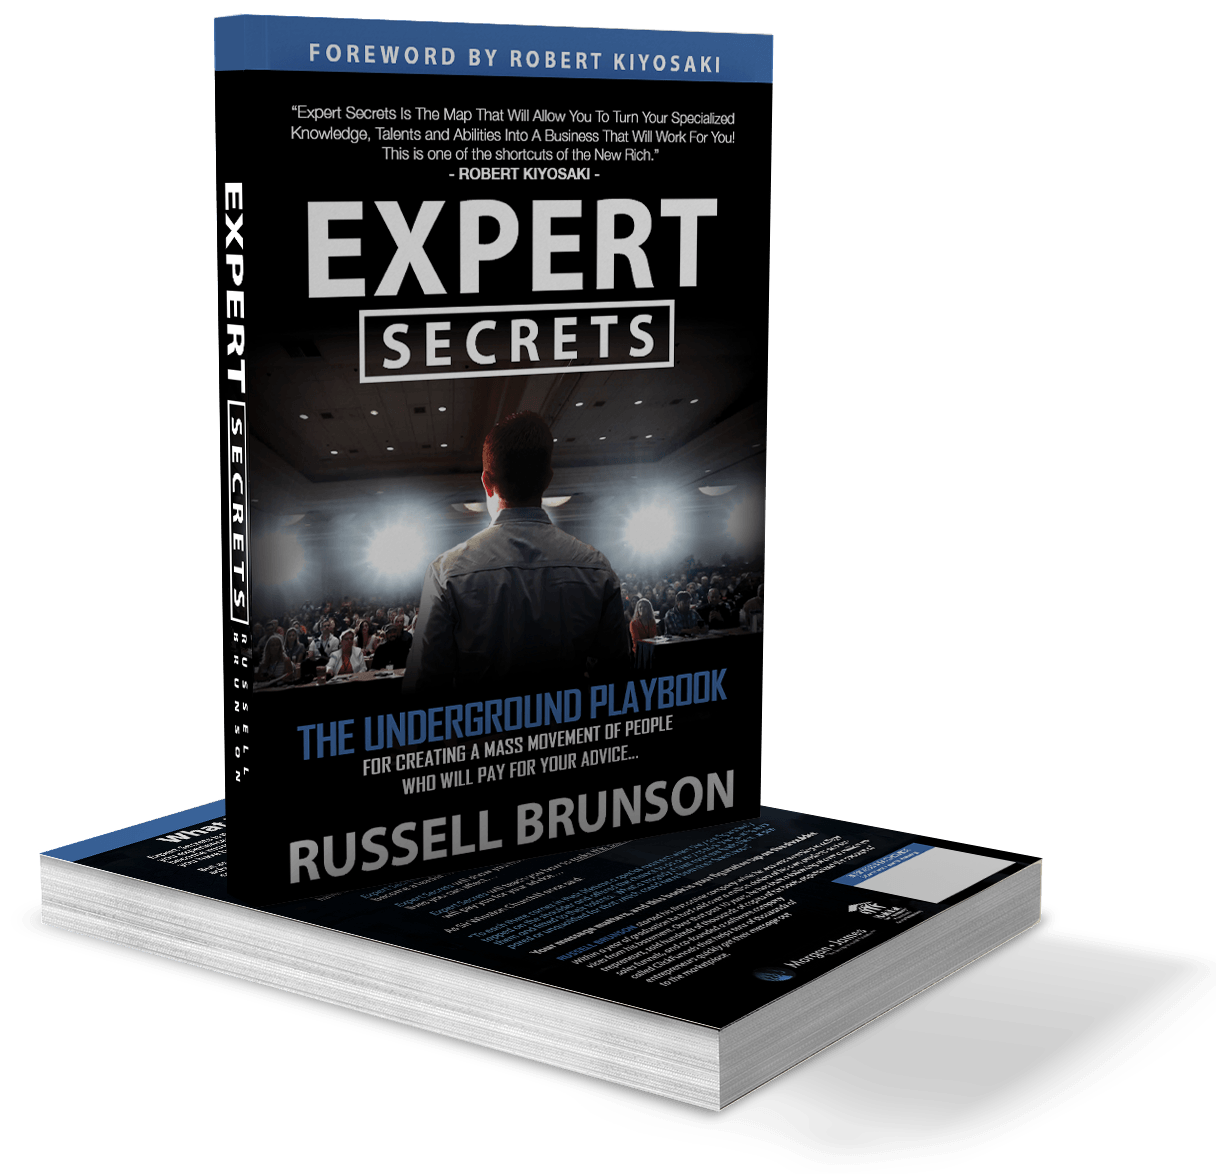 I Want My Free Copy Of The Expert Secrets Book!